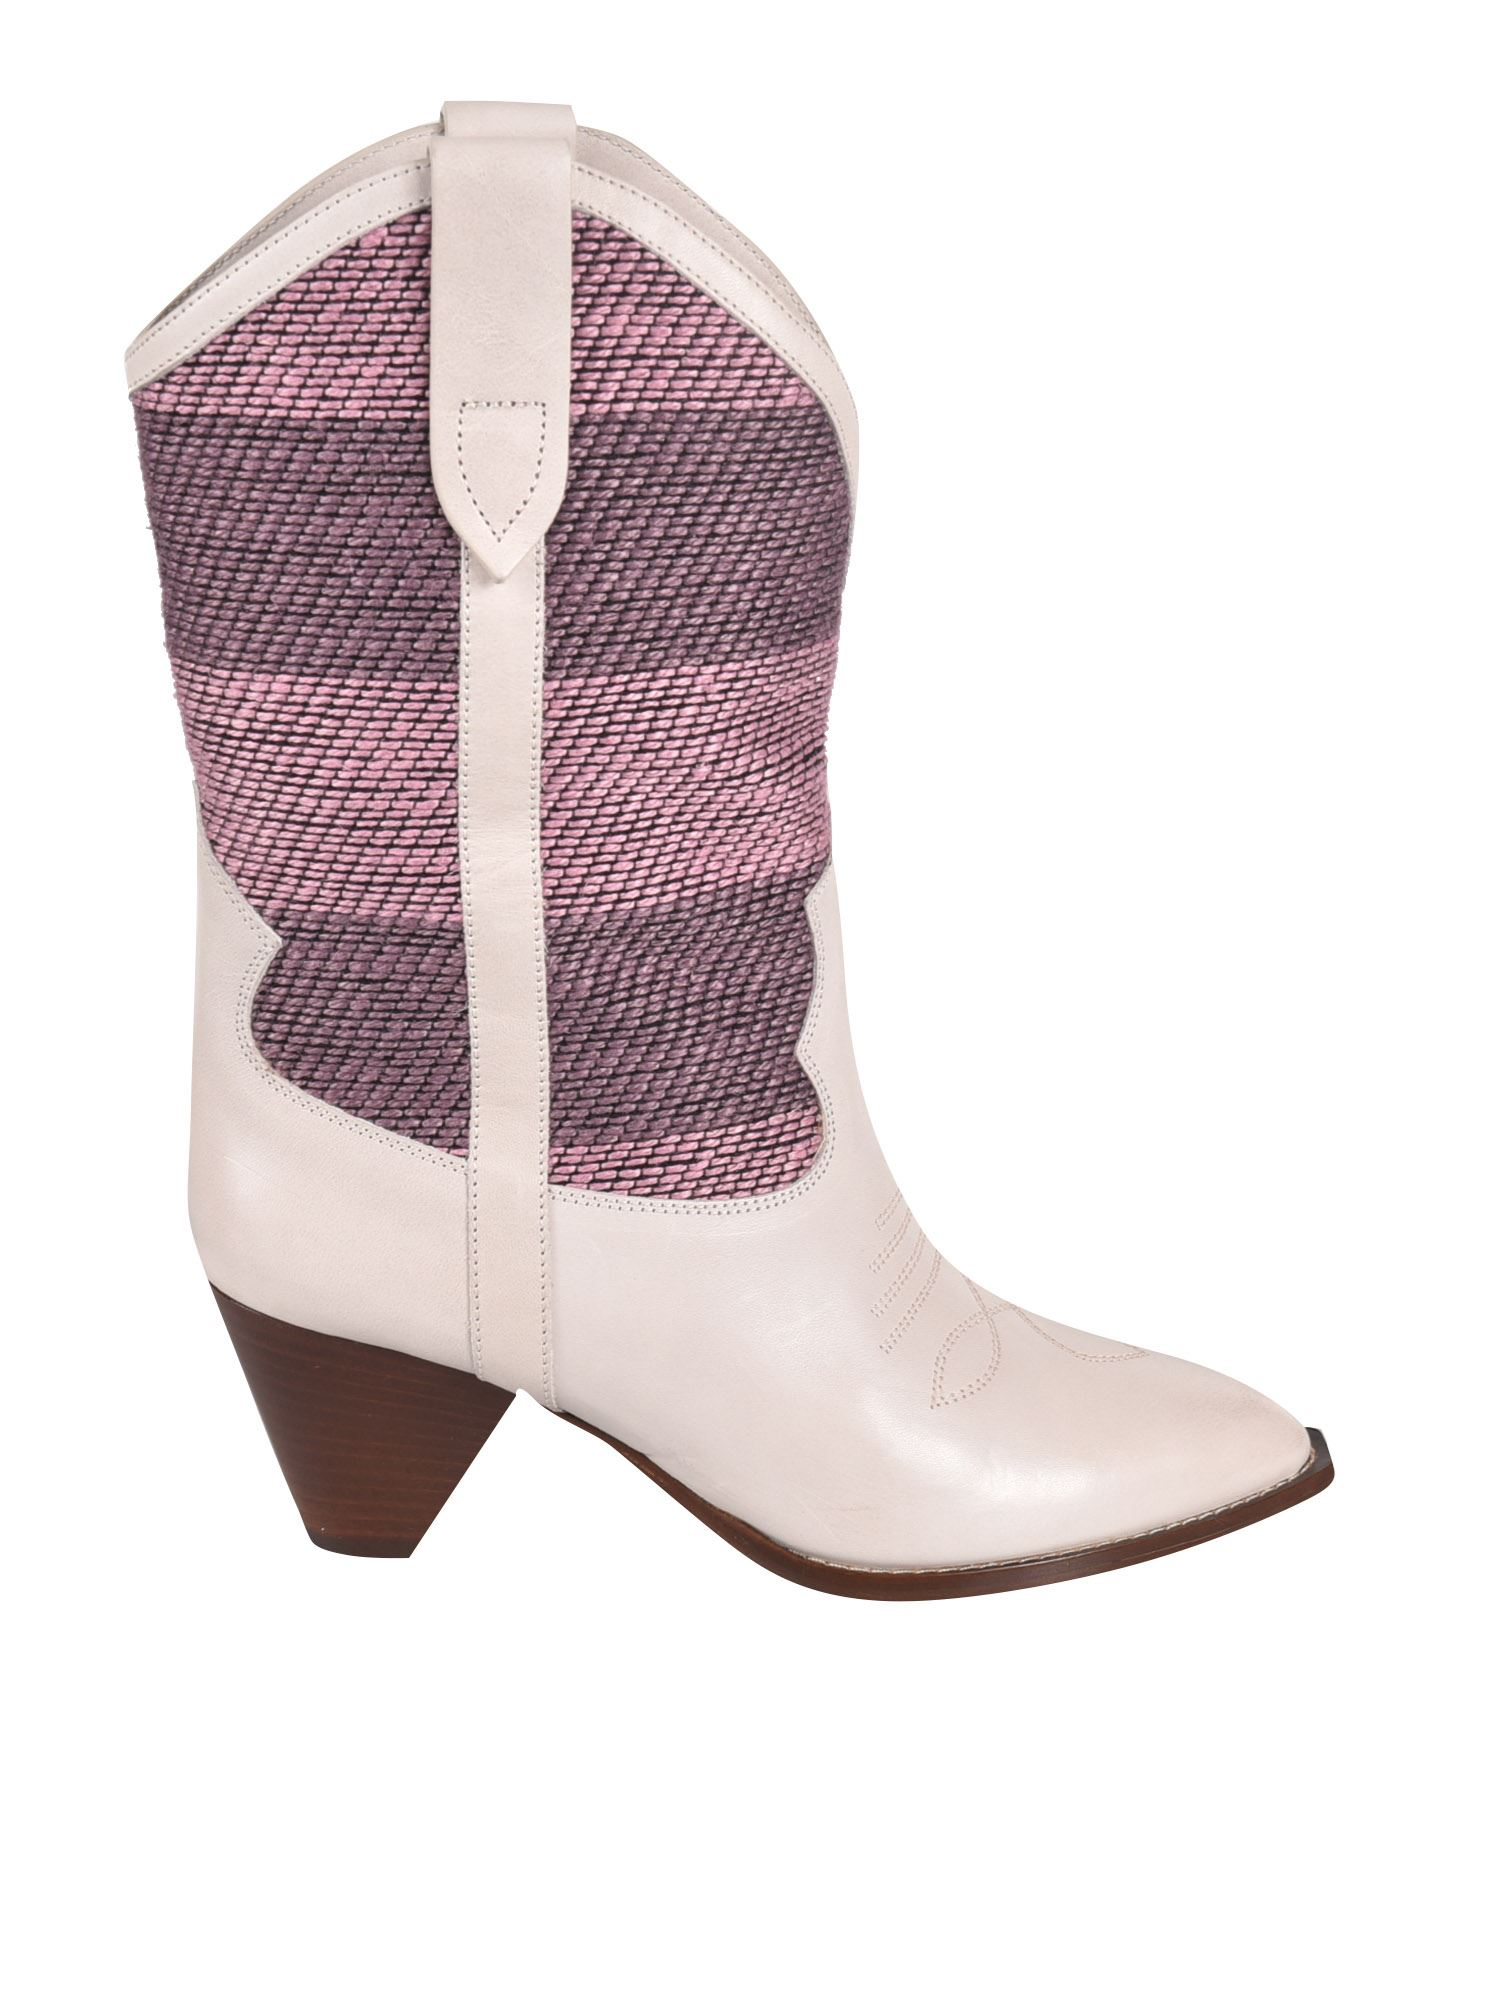 Isabel Marant Leathers ISABEL MARANT CONTRASTING LULIETTE BOOTS IN PINK